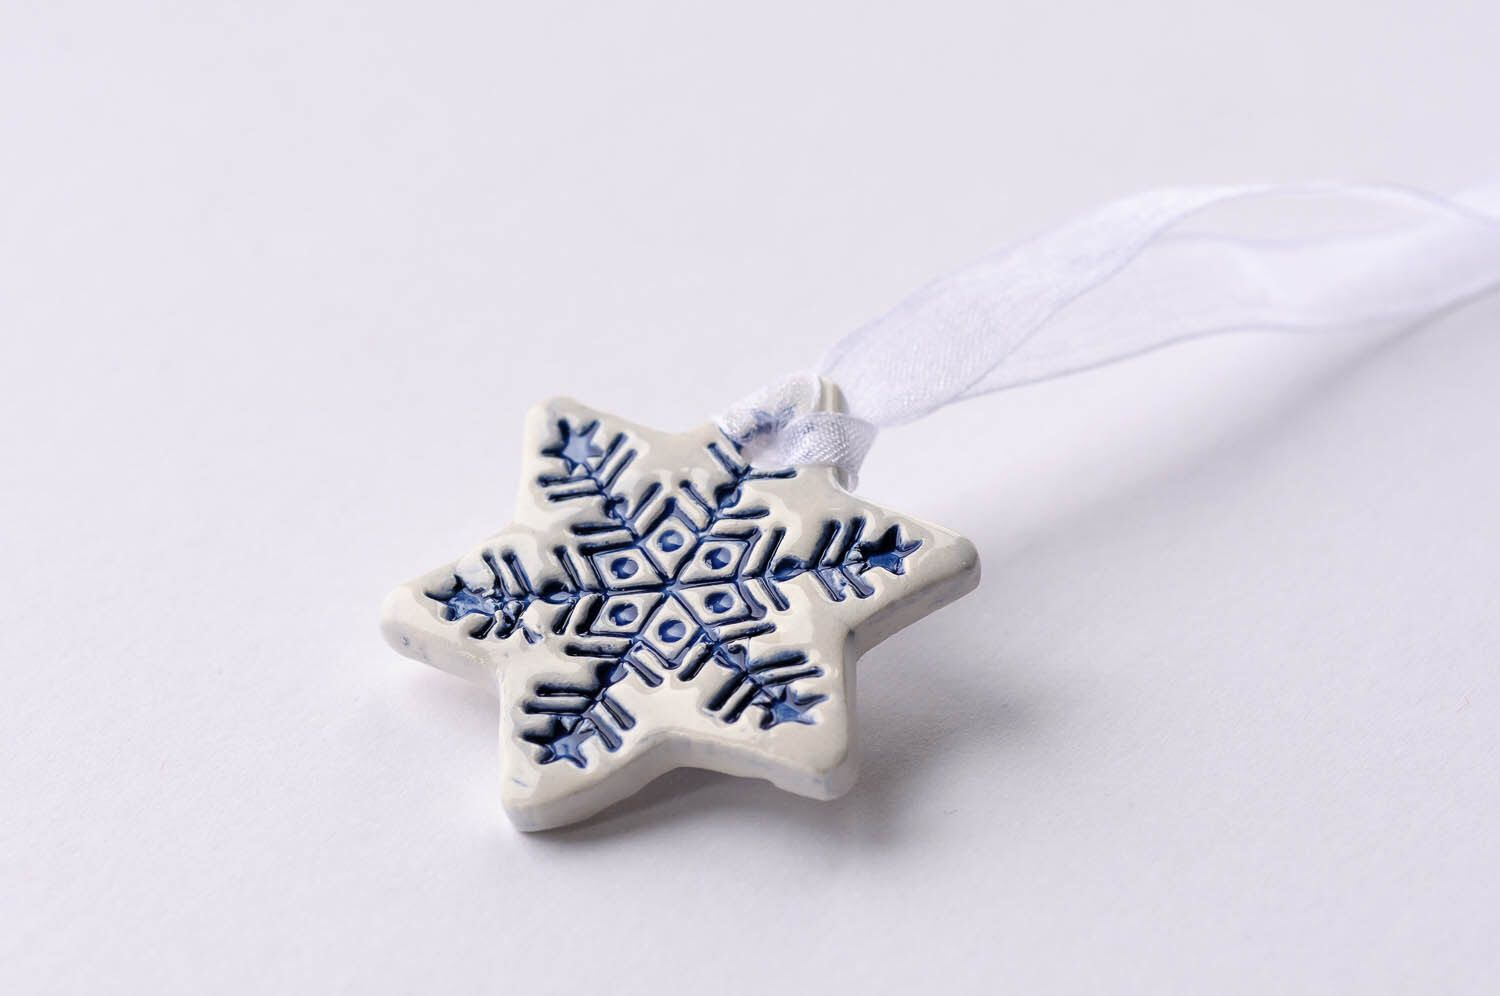 White ceramic Christmas decorations, star ornament, star gift tags, Set of 3, 5 or 10 by islaclay on Etsy https://www.etsy.com/listing/202770027/white-ceramic-christmas-decorations-star